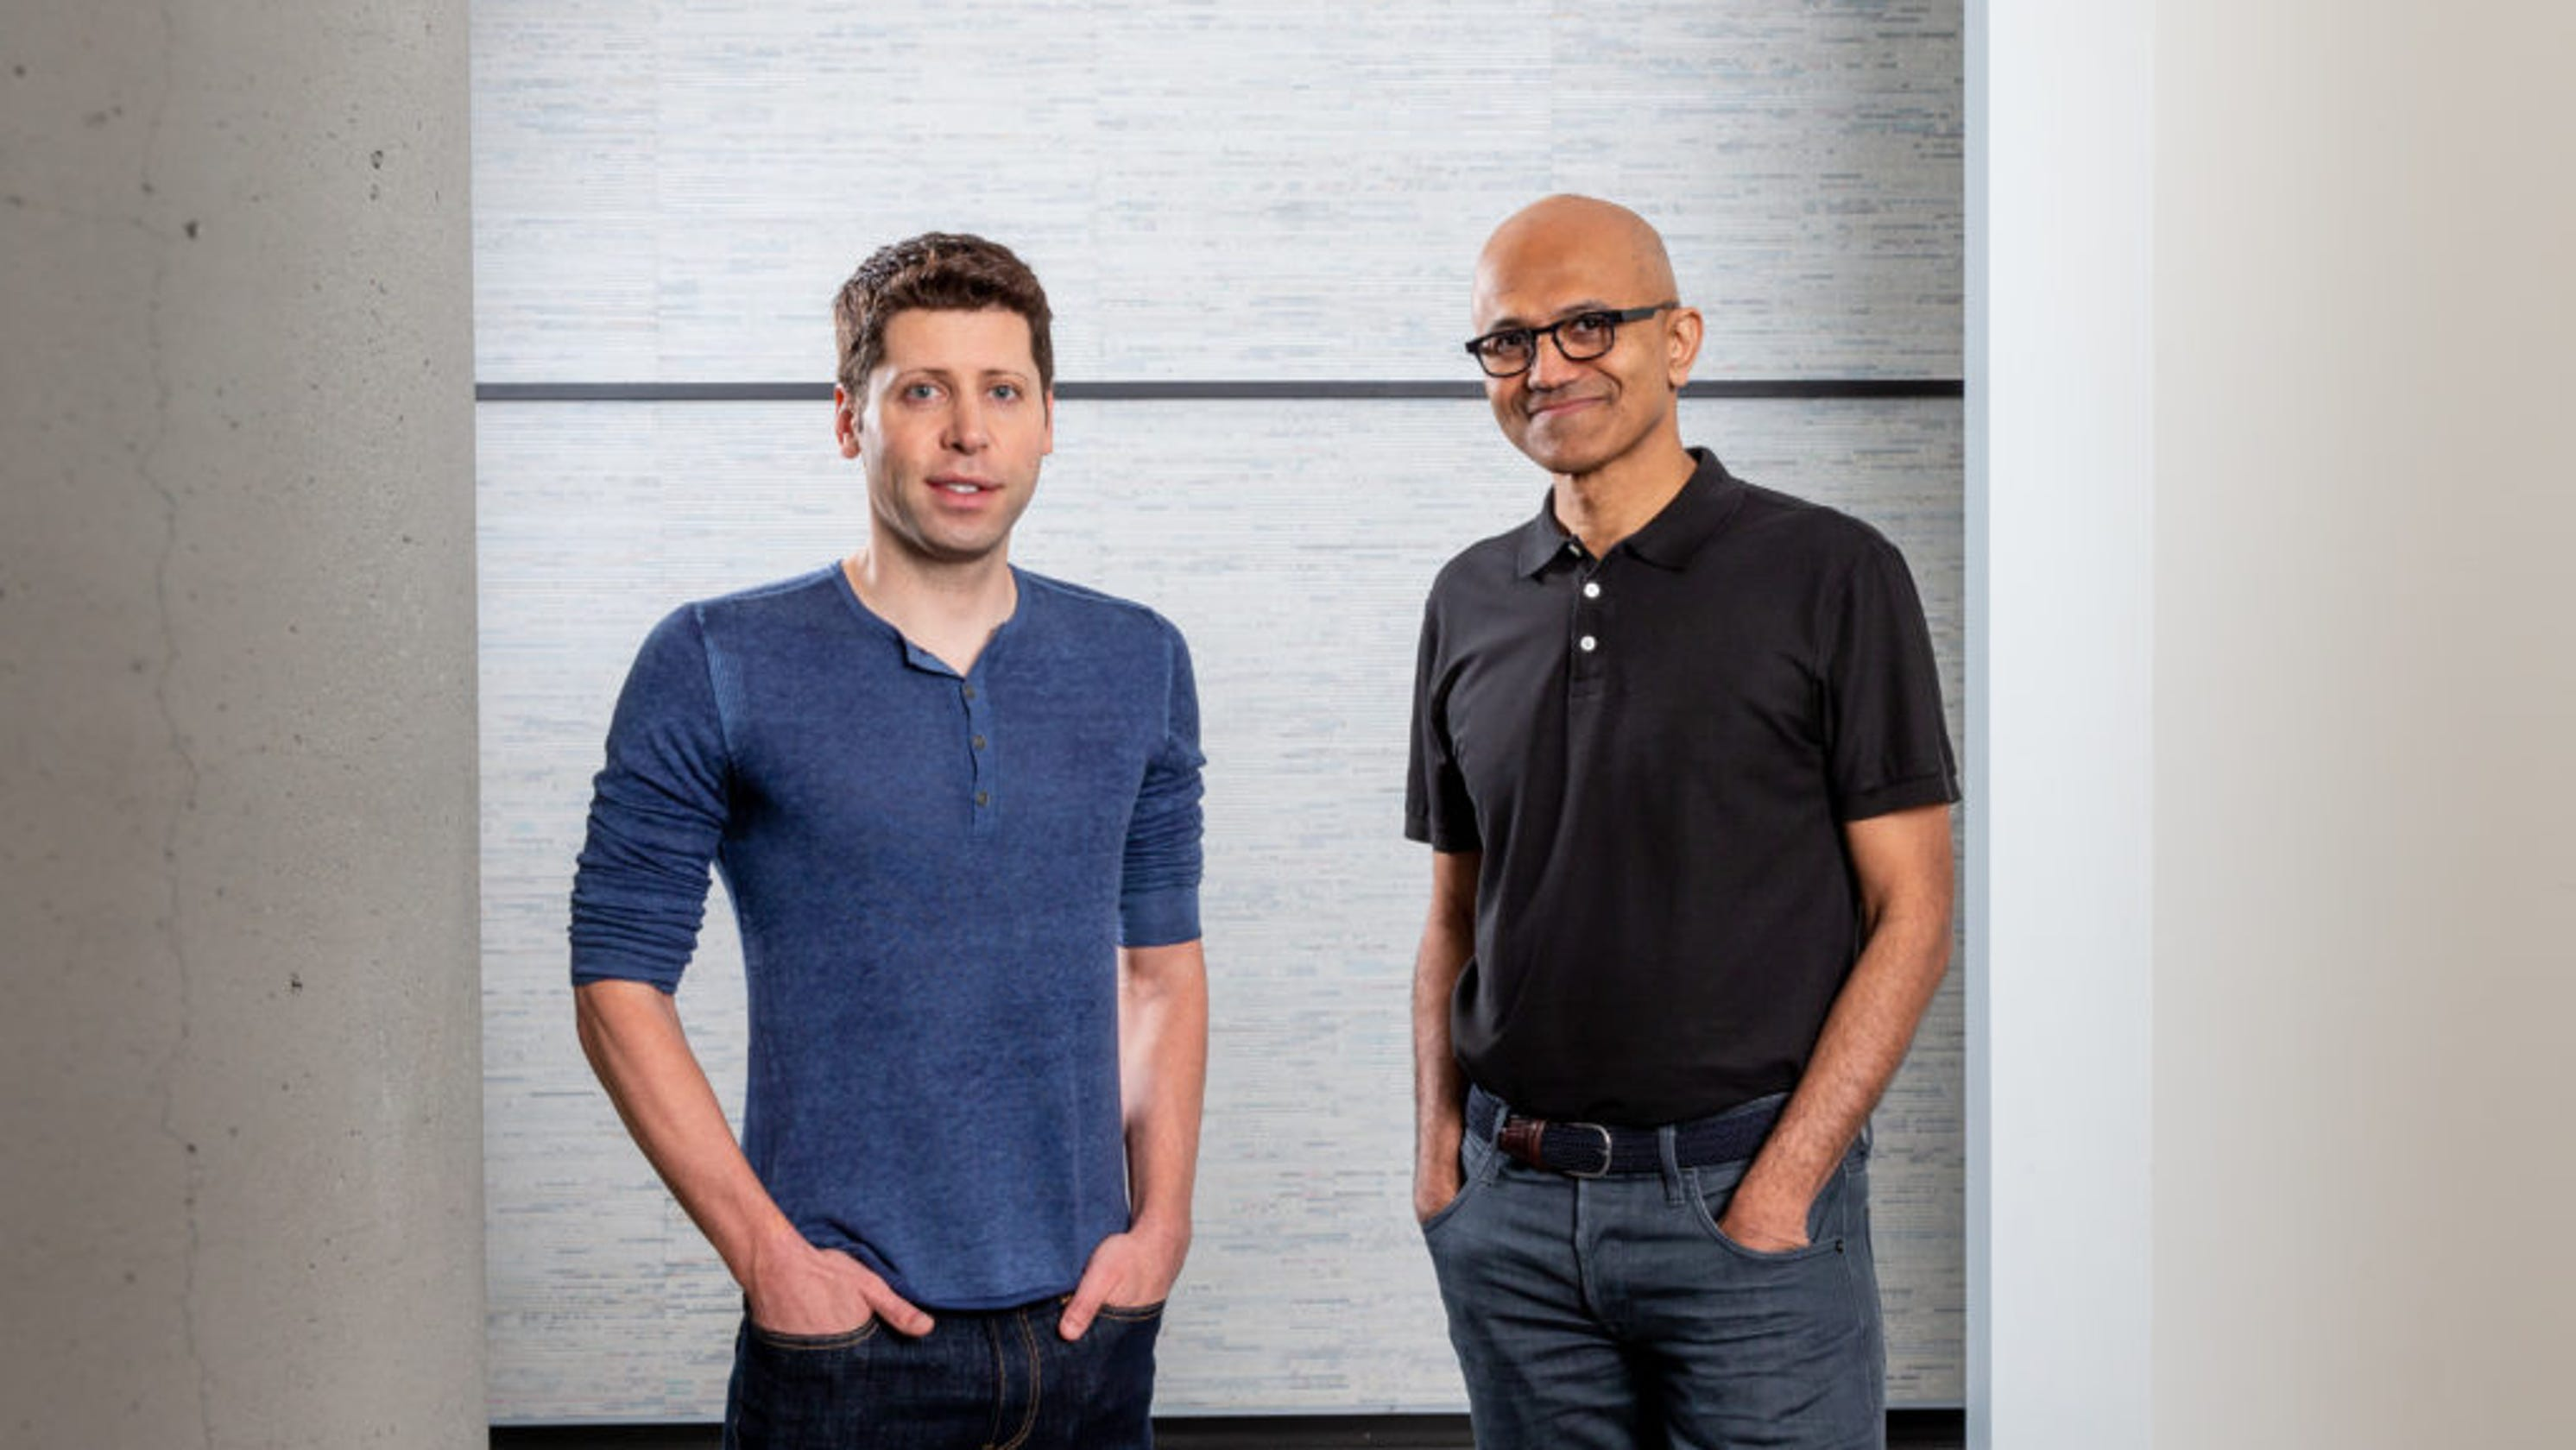 Microsoft invests $1 billion in artificial intelligence lab co-founded by Elon Musk